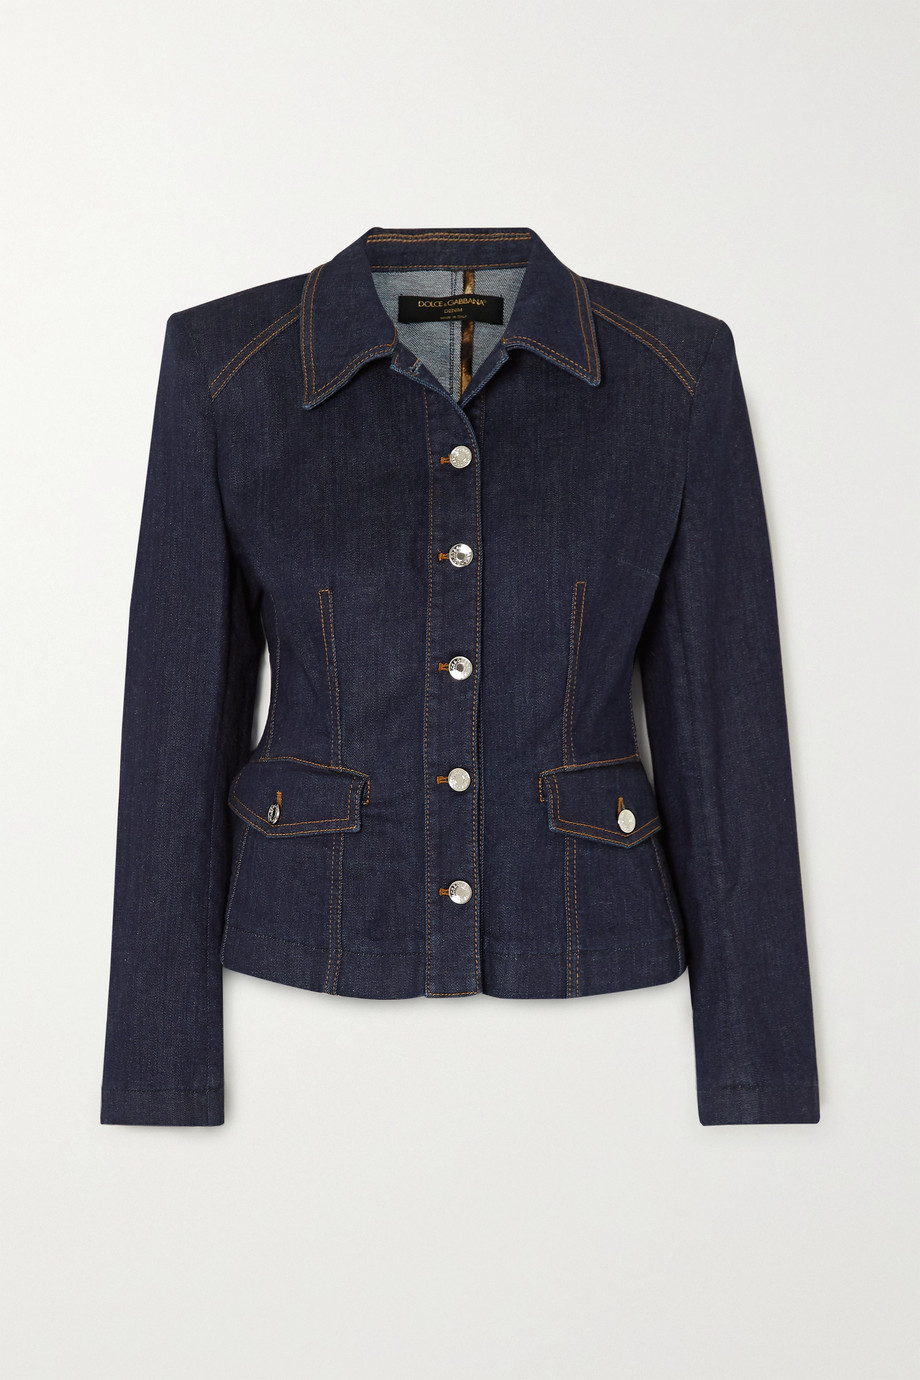 Dolce & Gabbana Denim peplum jacket